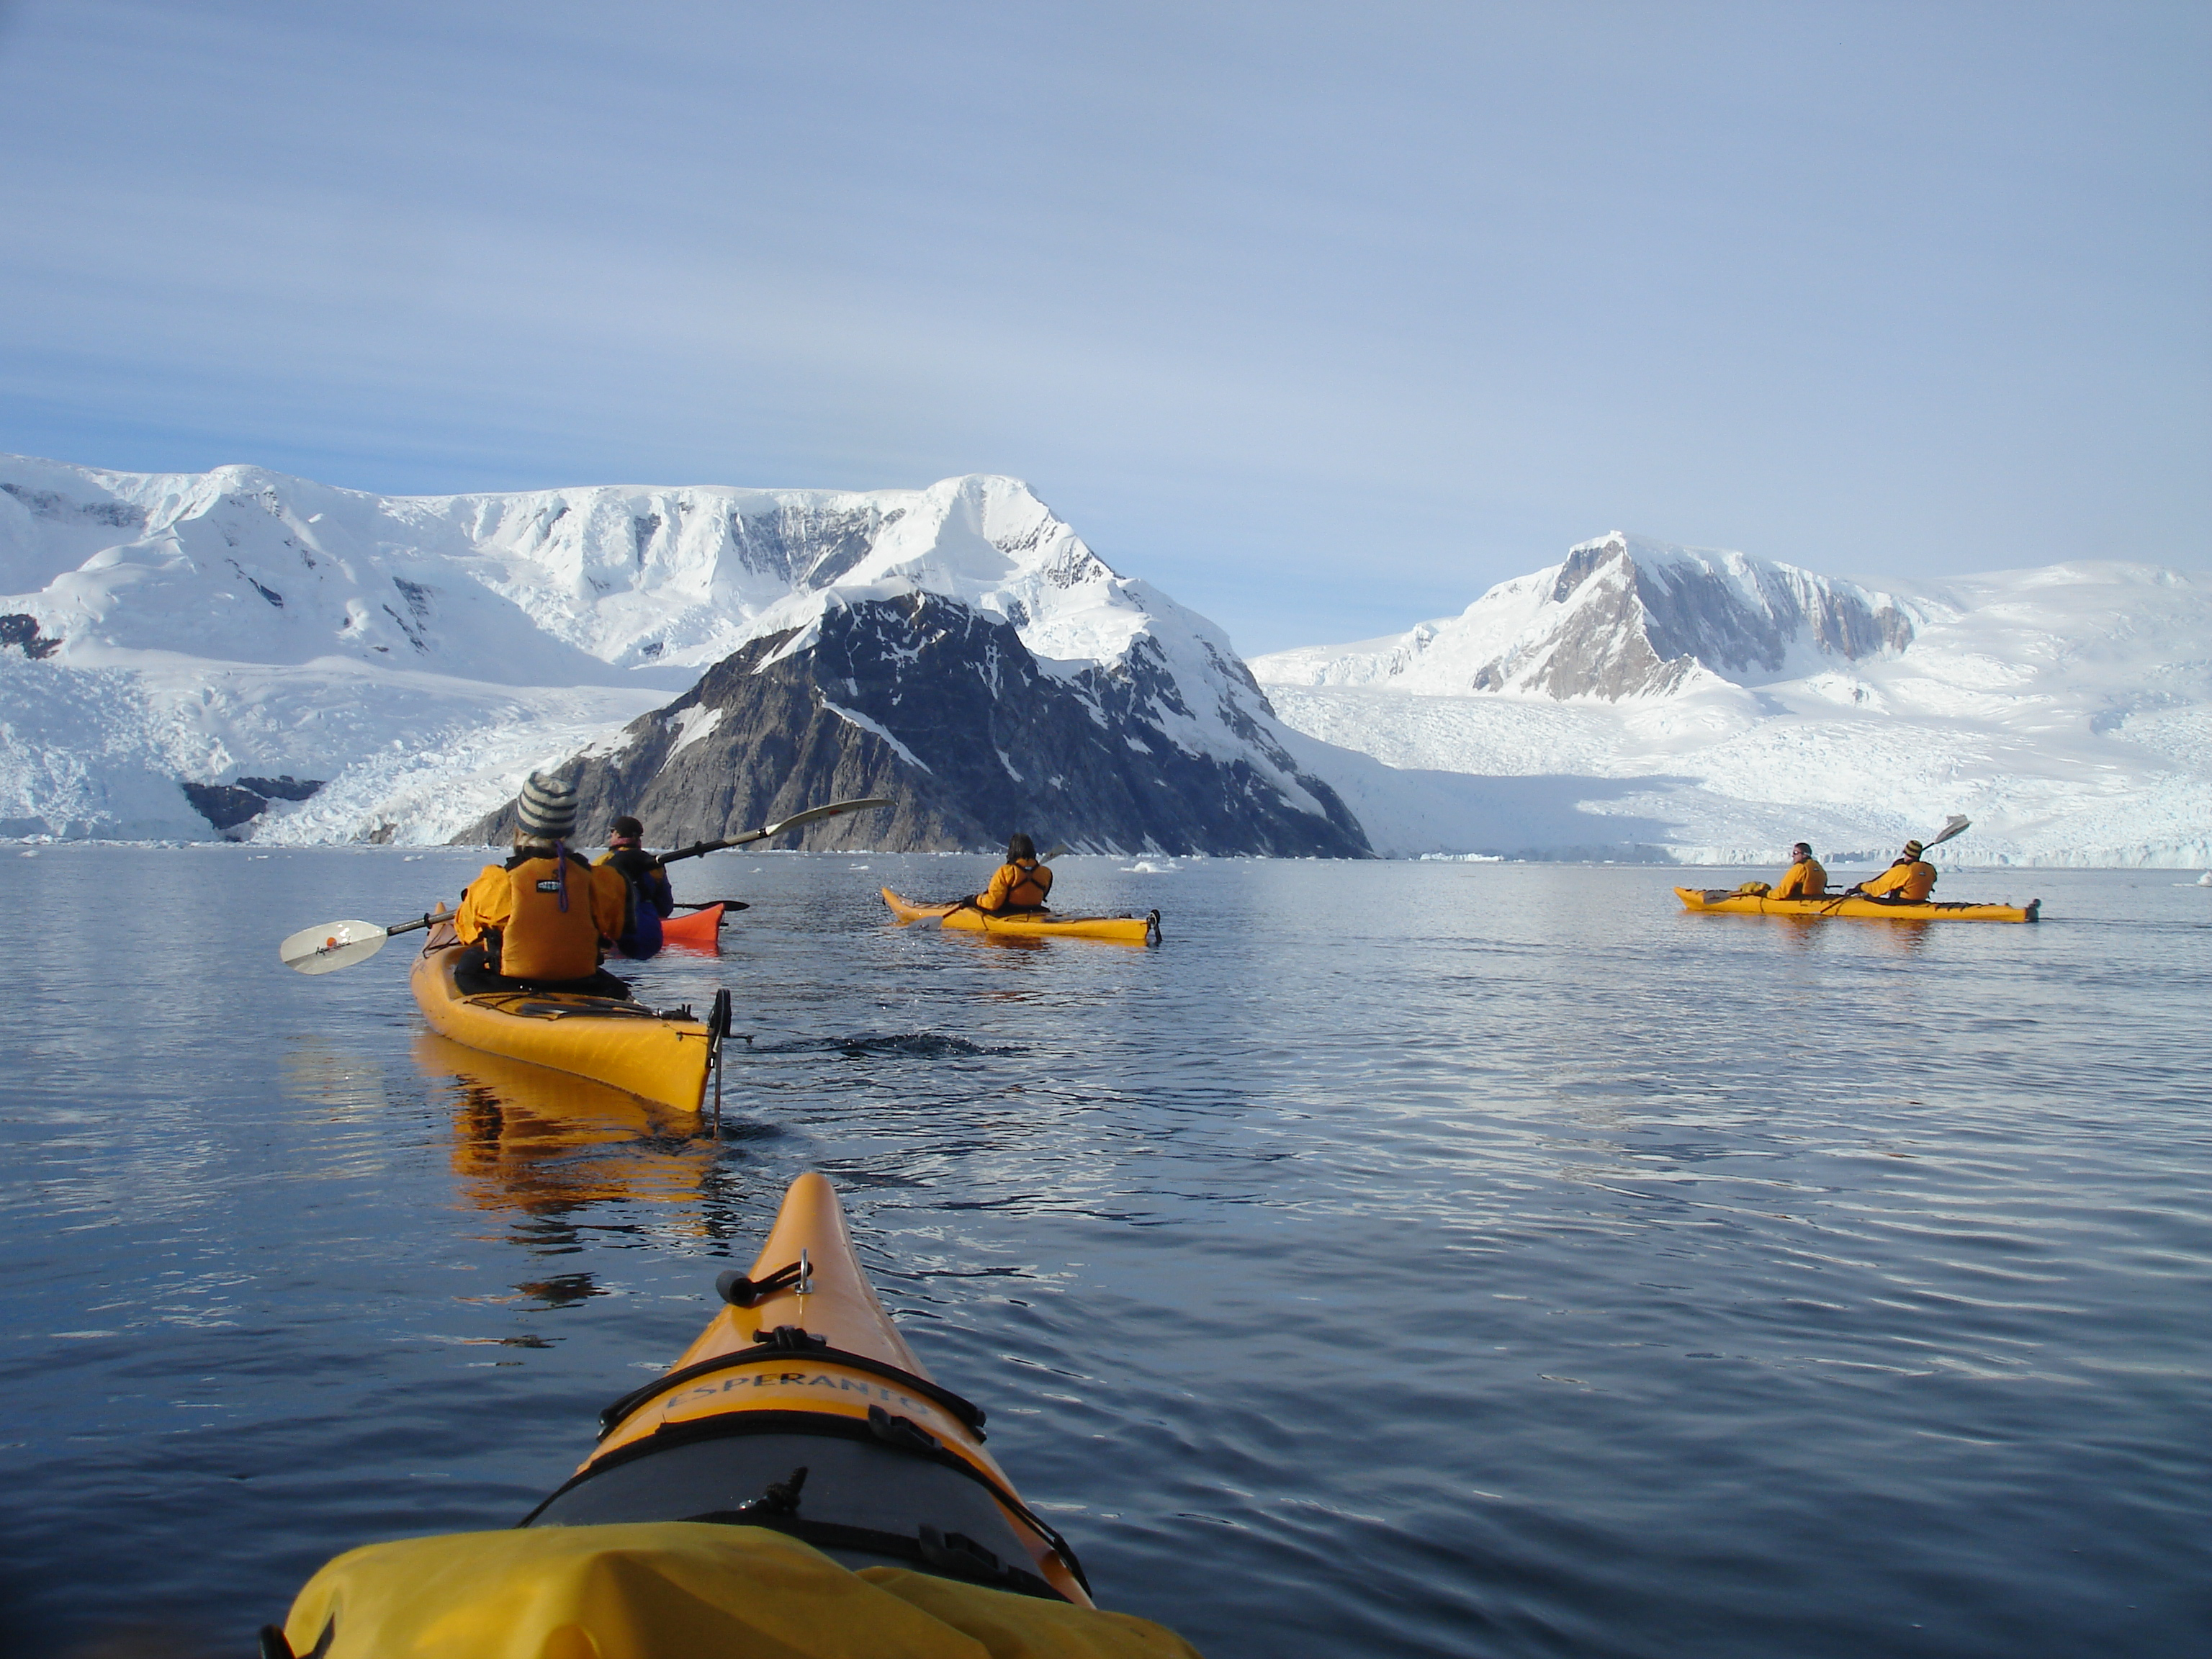 Is it safe to travel to antarctica chimu adventures blog for Can i visit antarctica